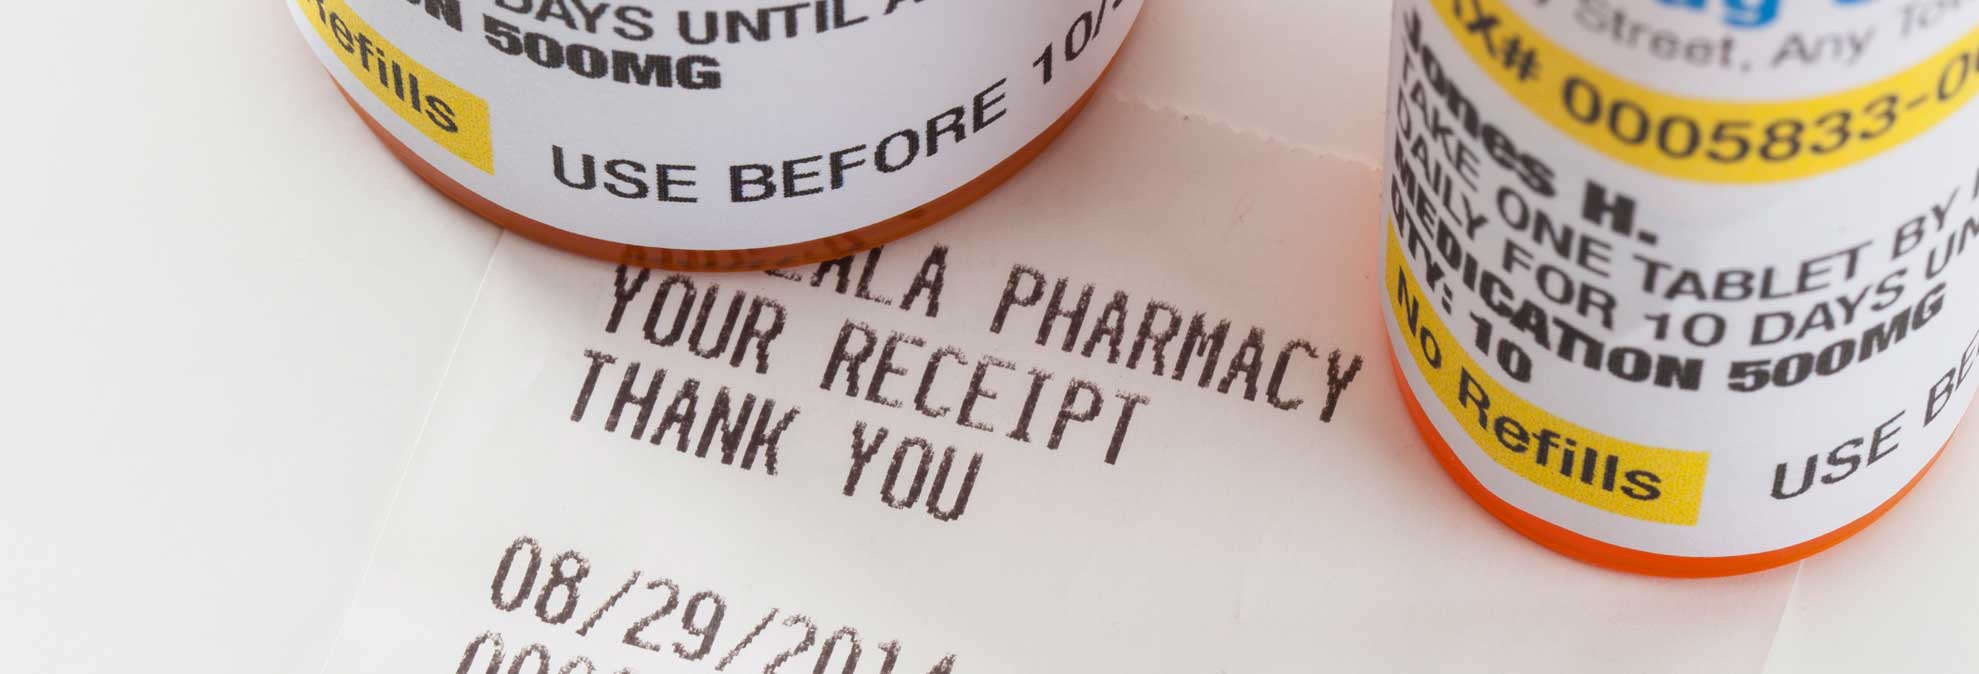 As Drug Prices Increase Quality Of Life Goes Down